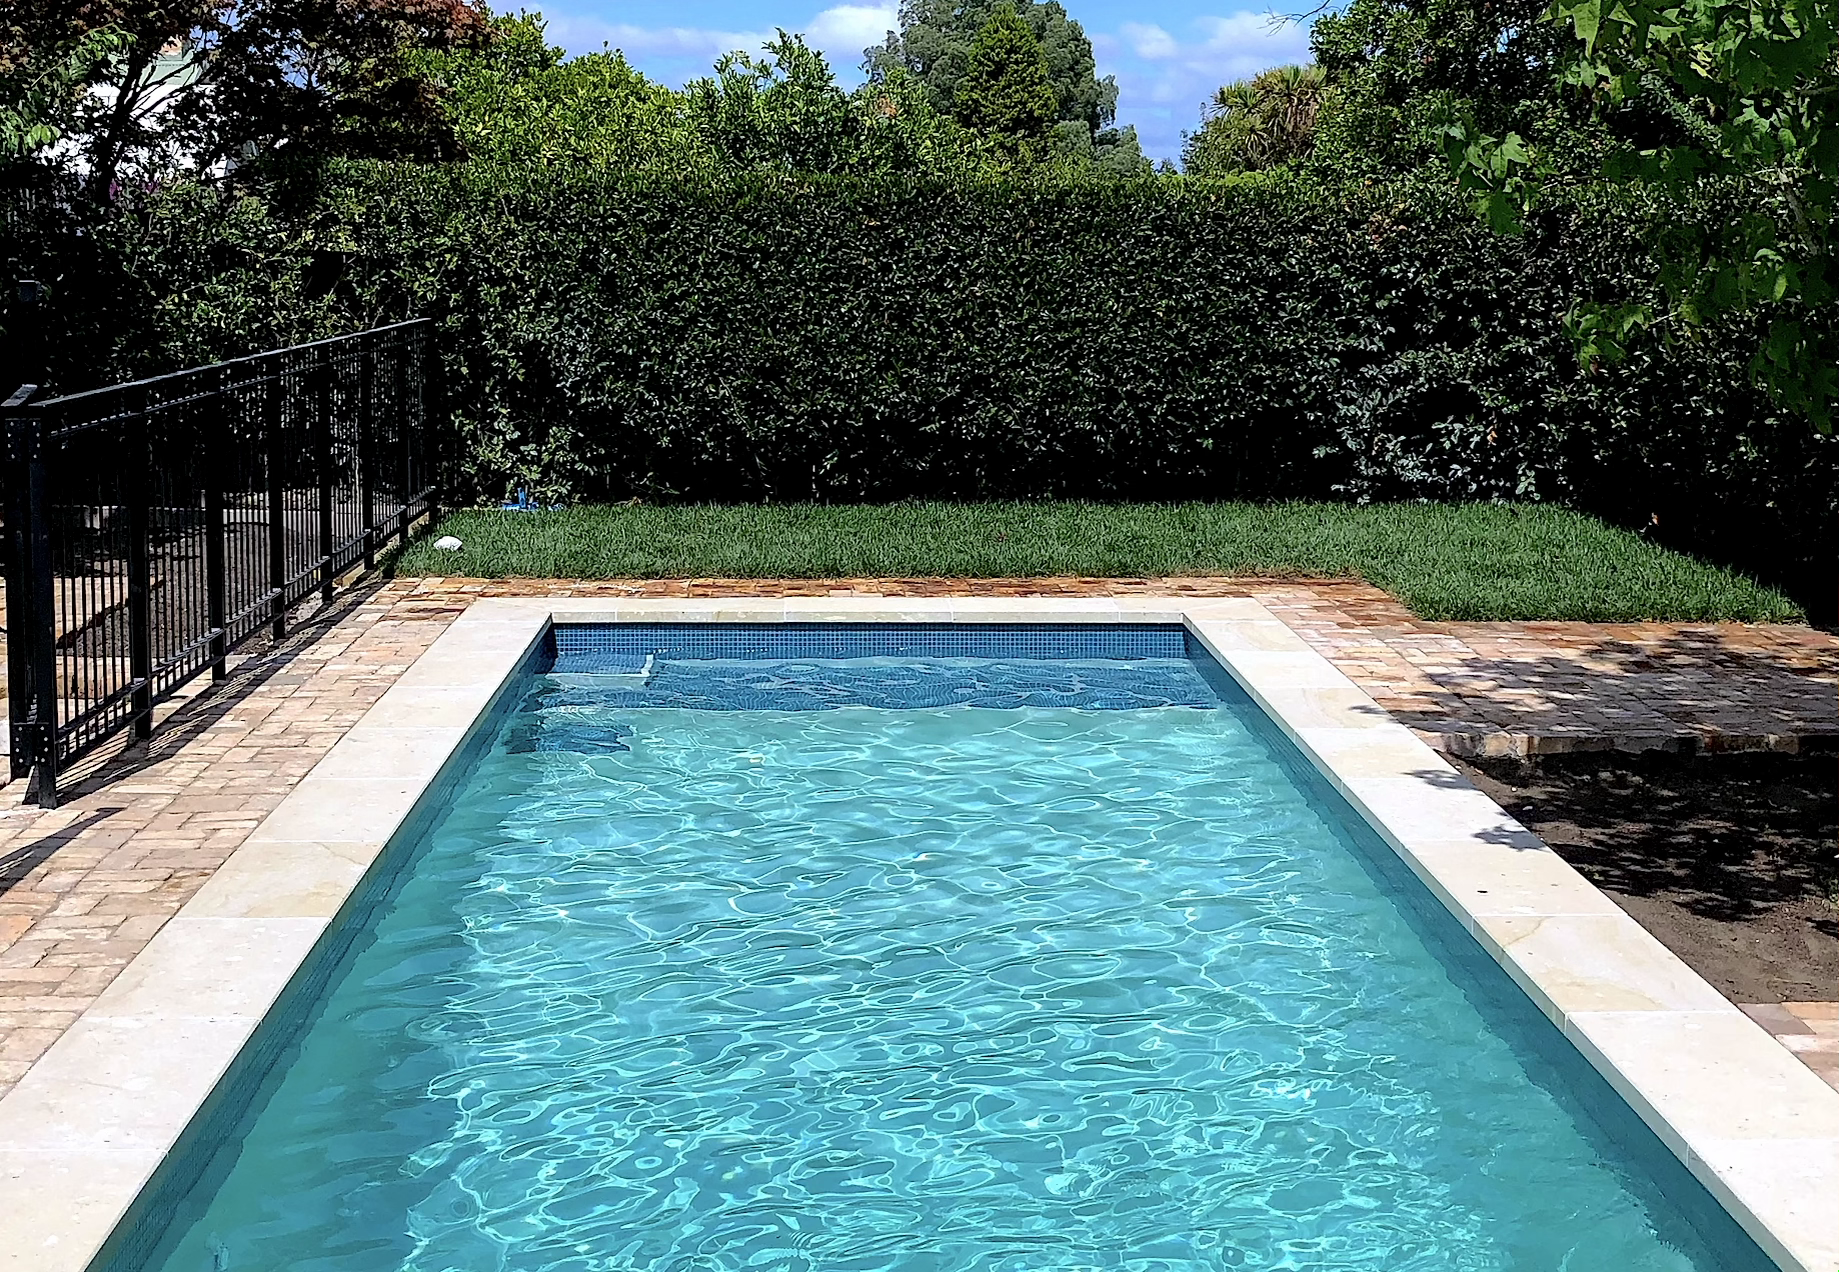 8.5x3.5m pool by Mobius Pools